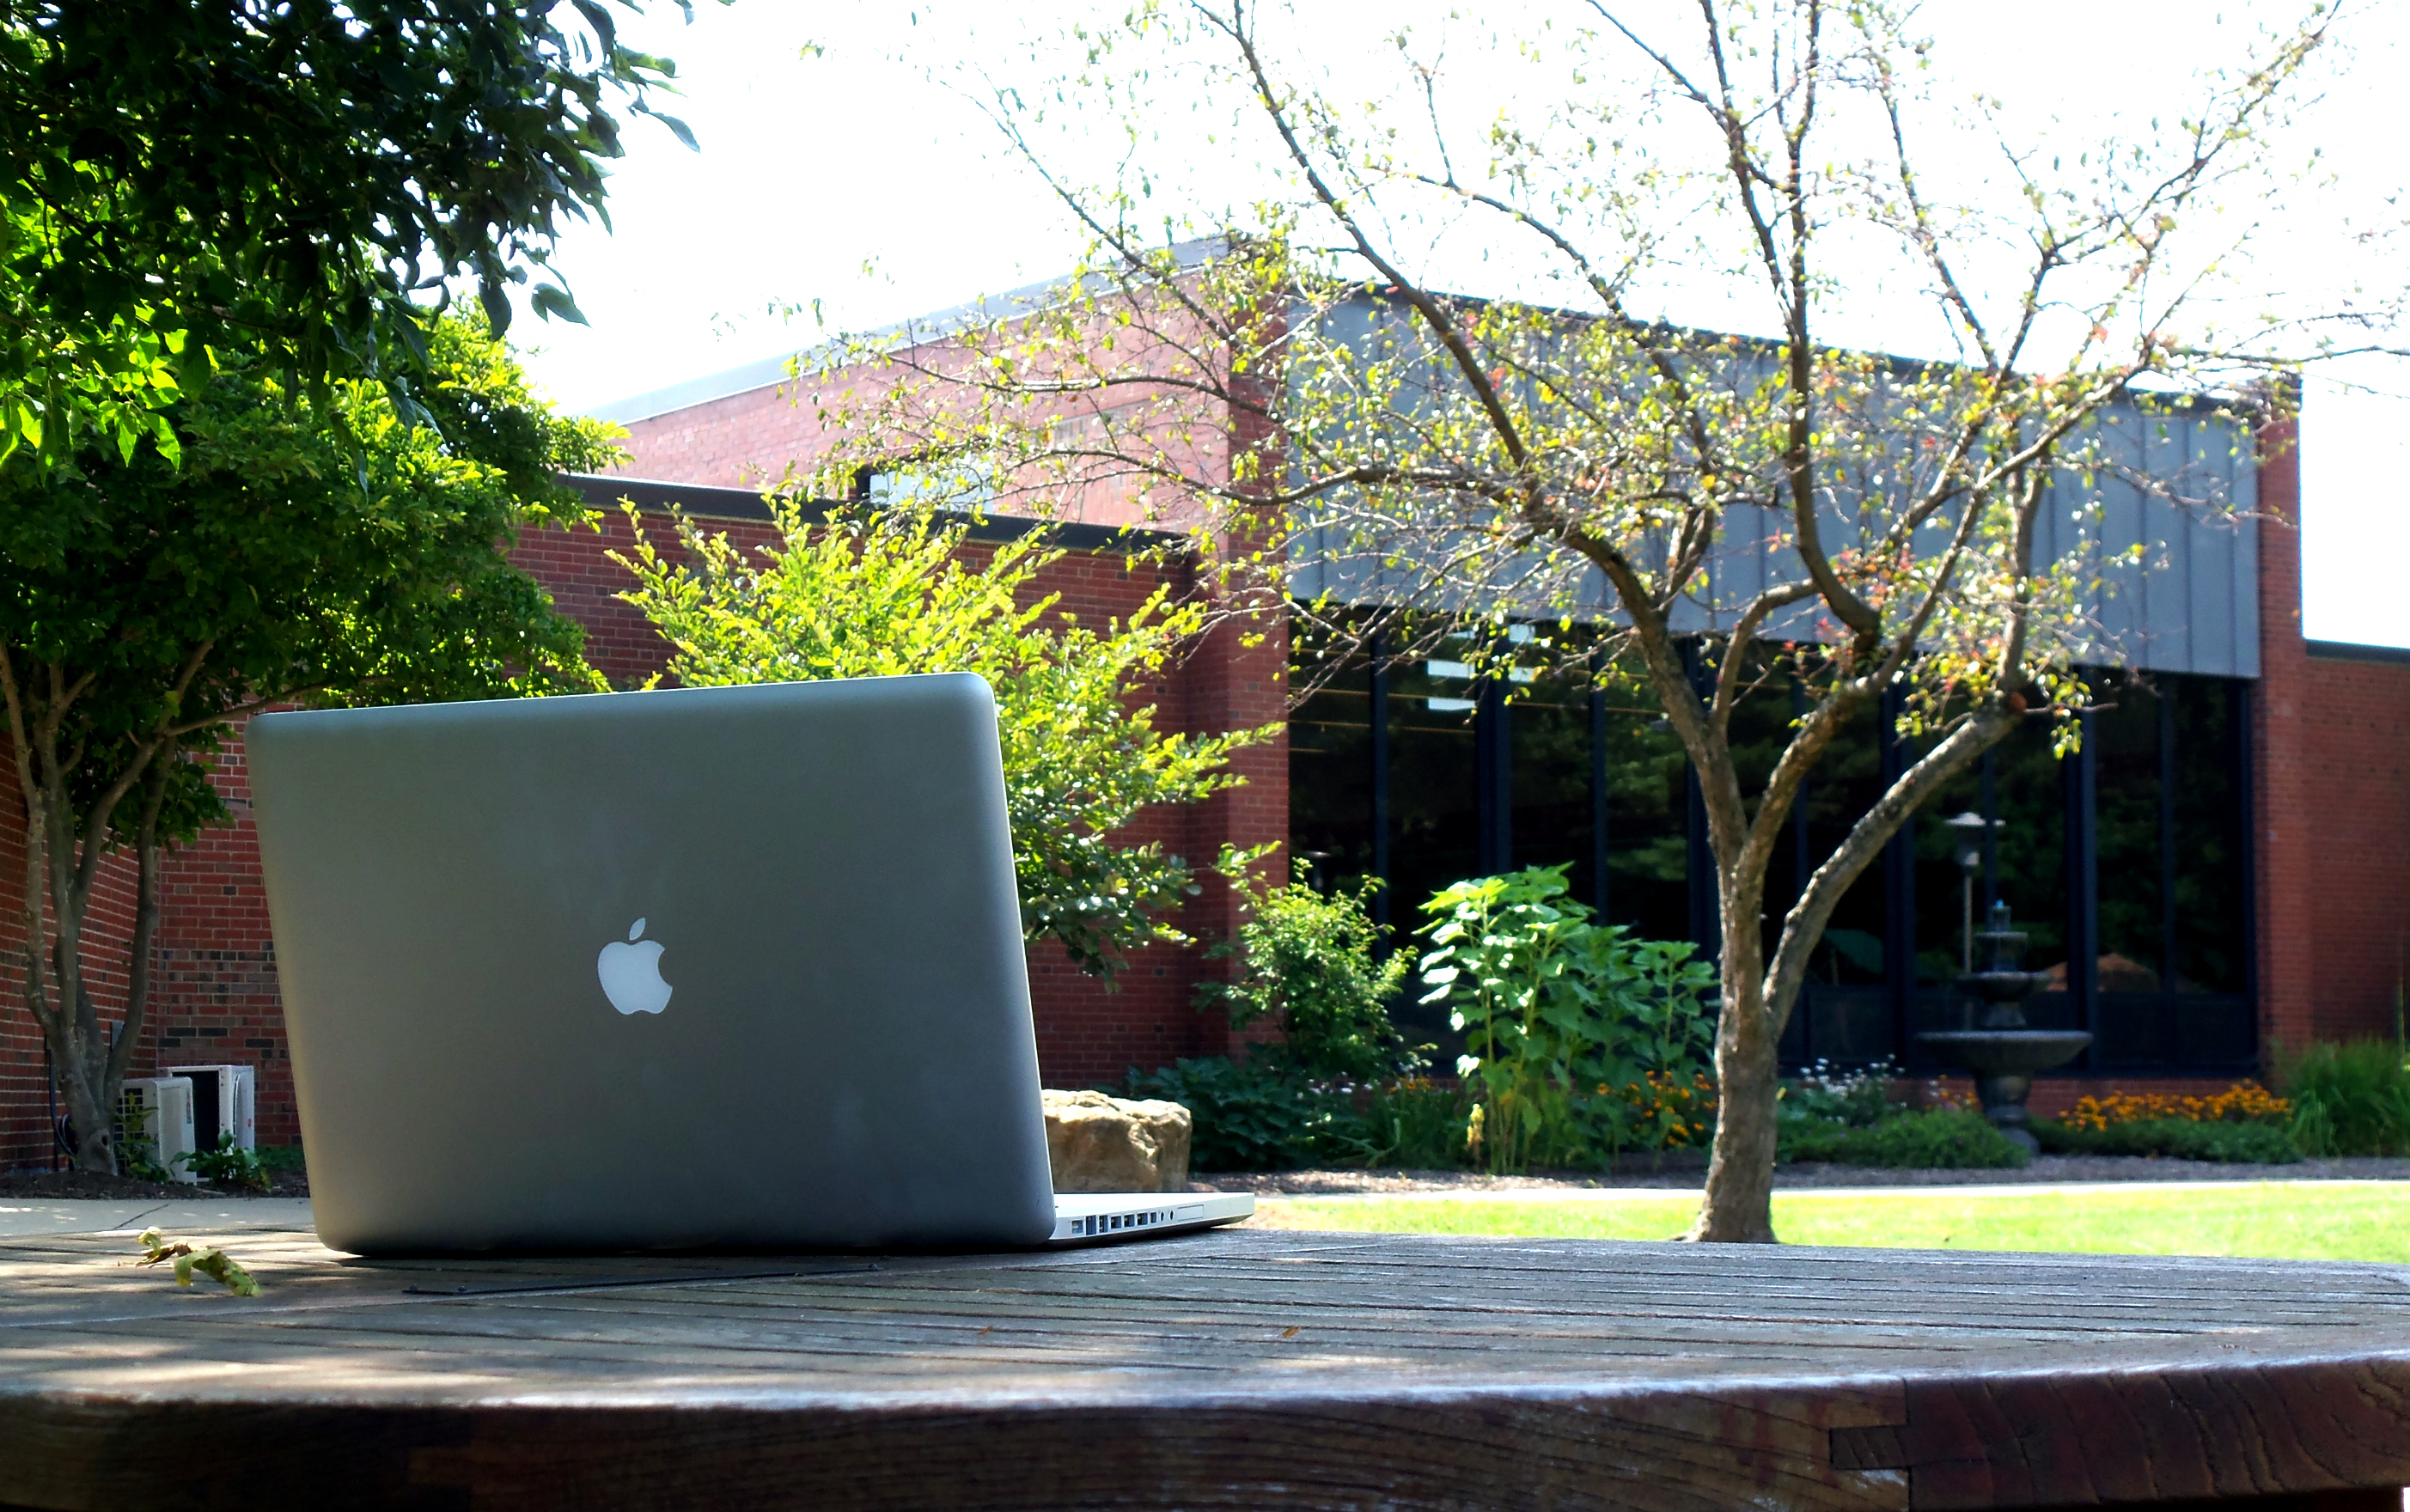 reeves hall with MacBook in foreground